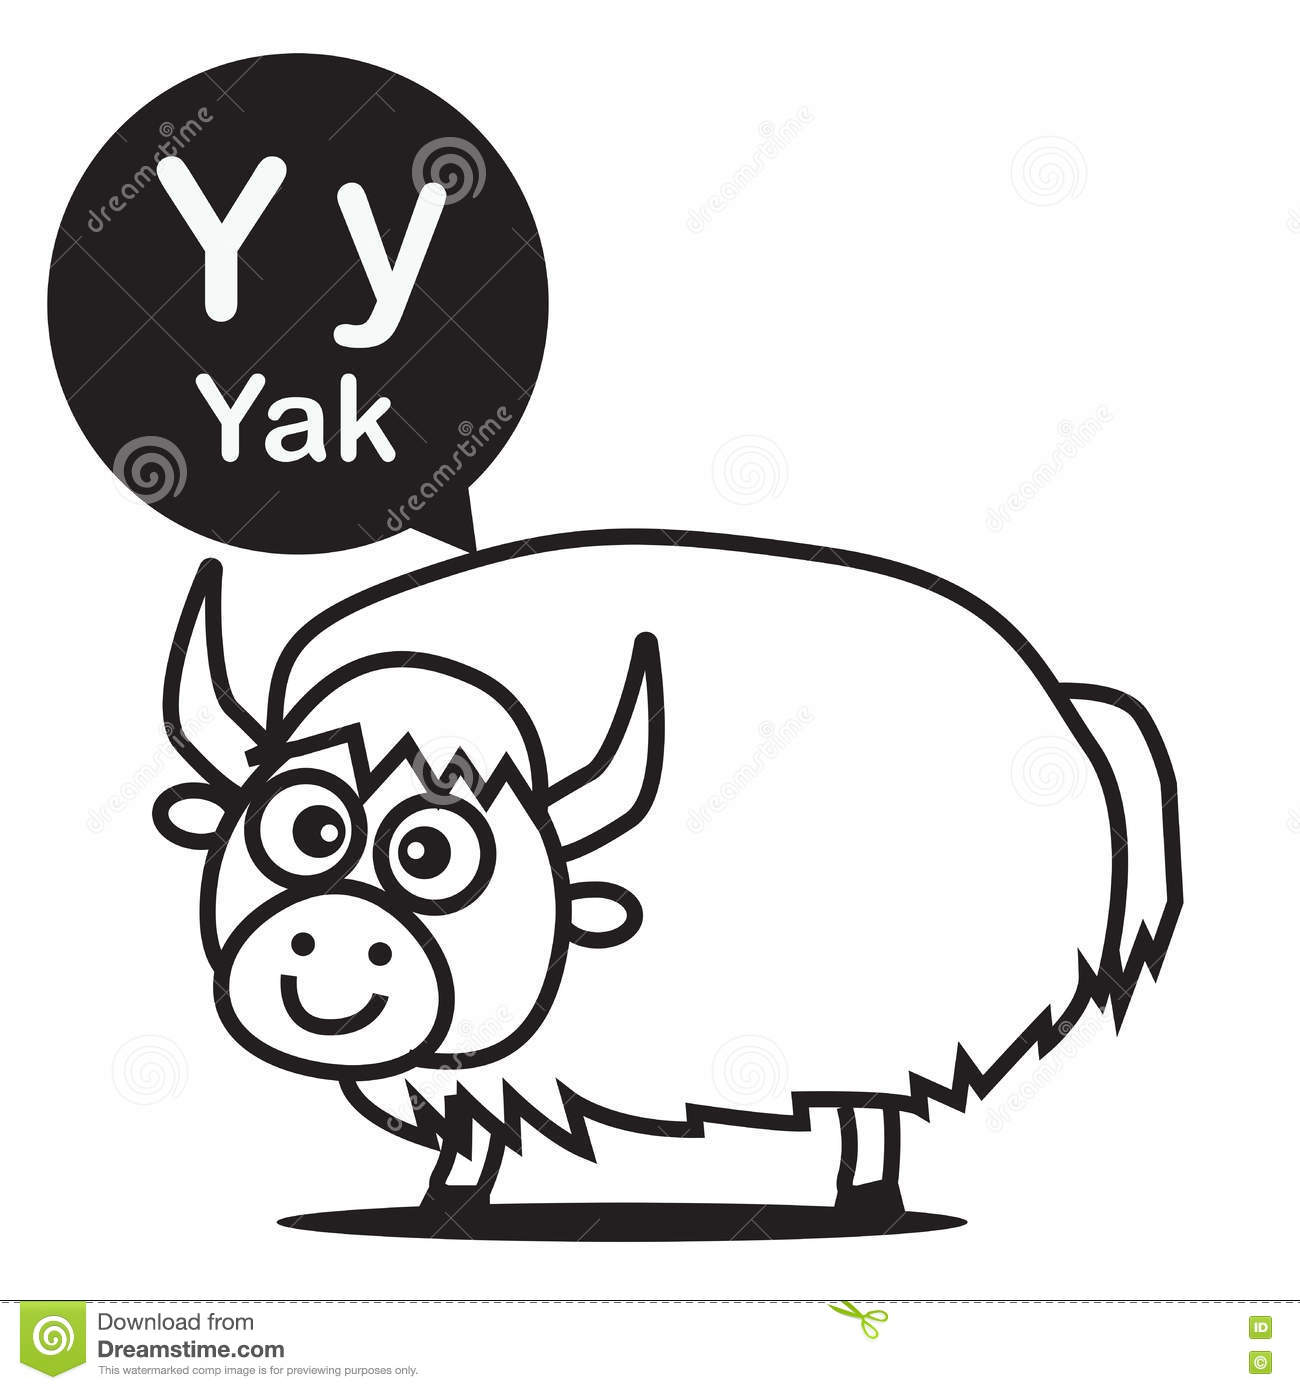 Animal Alphabet Y Yak Cartoon Vector